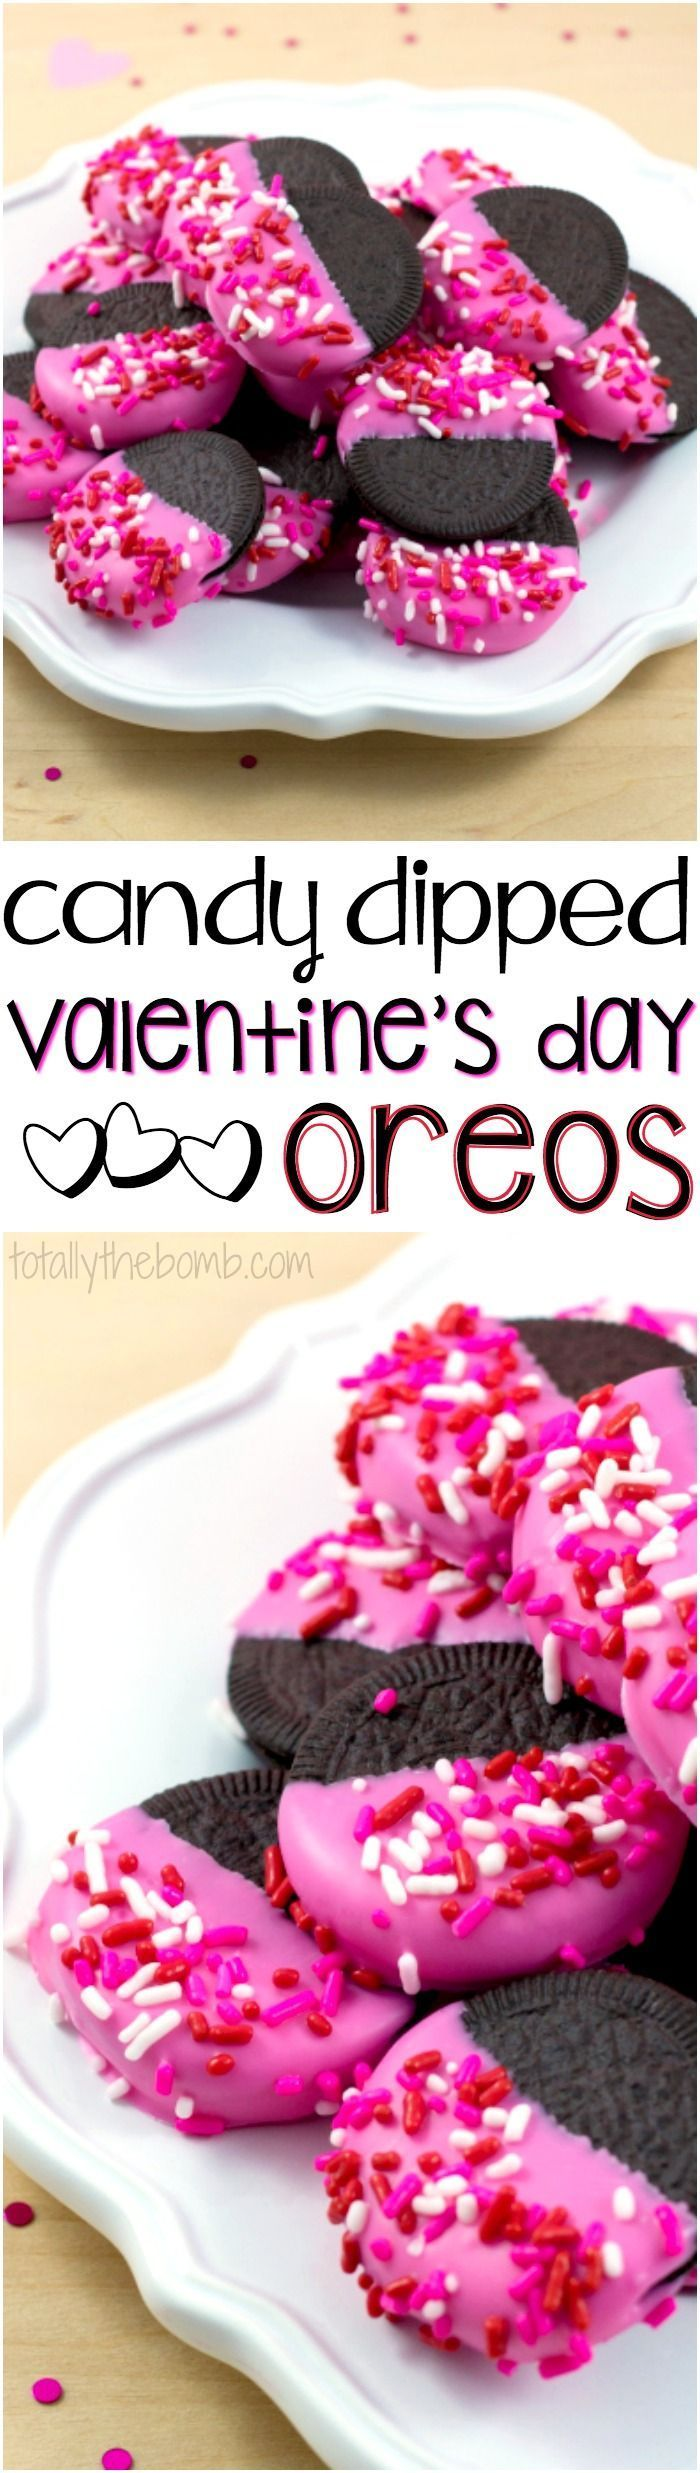 The perfect gift for your cookie loving Valentine, try our Candy-Dipped Valentine's Day Oreos! | #recipe #valentine #valentinesday #cookies #snacks #treats